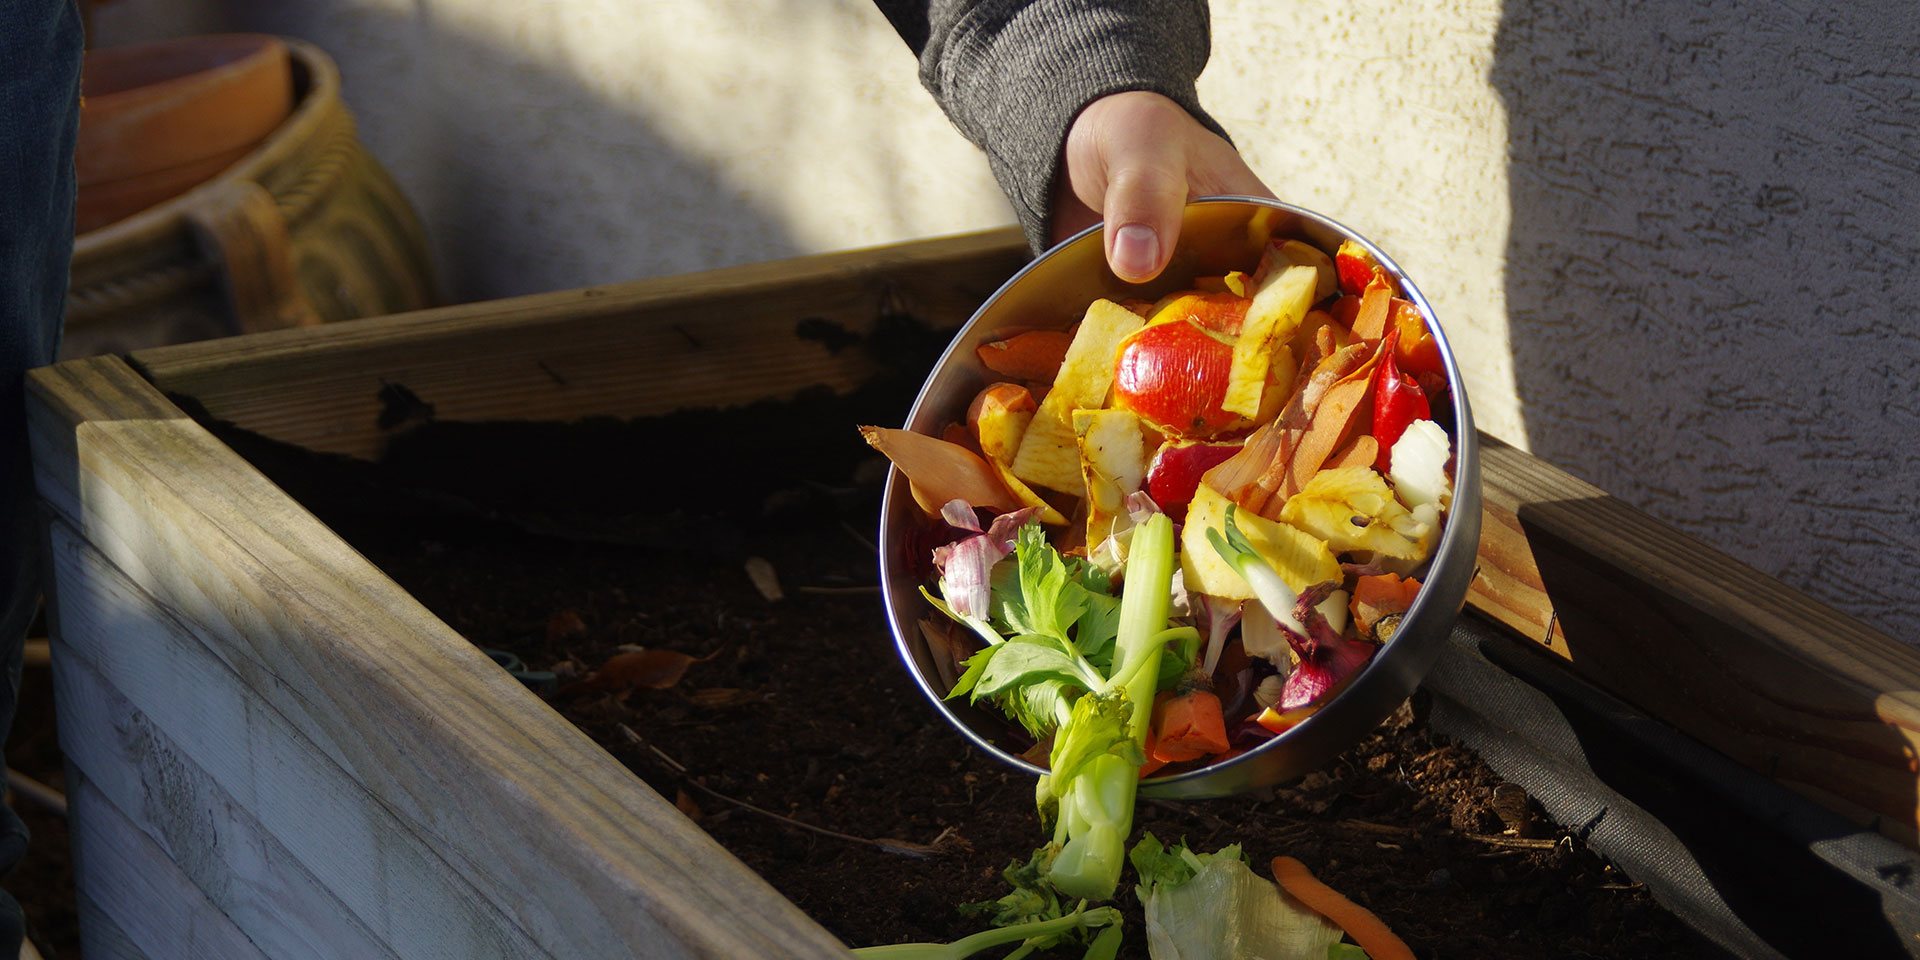 how to compost - tips from an expert